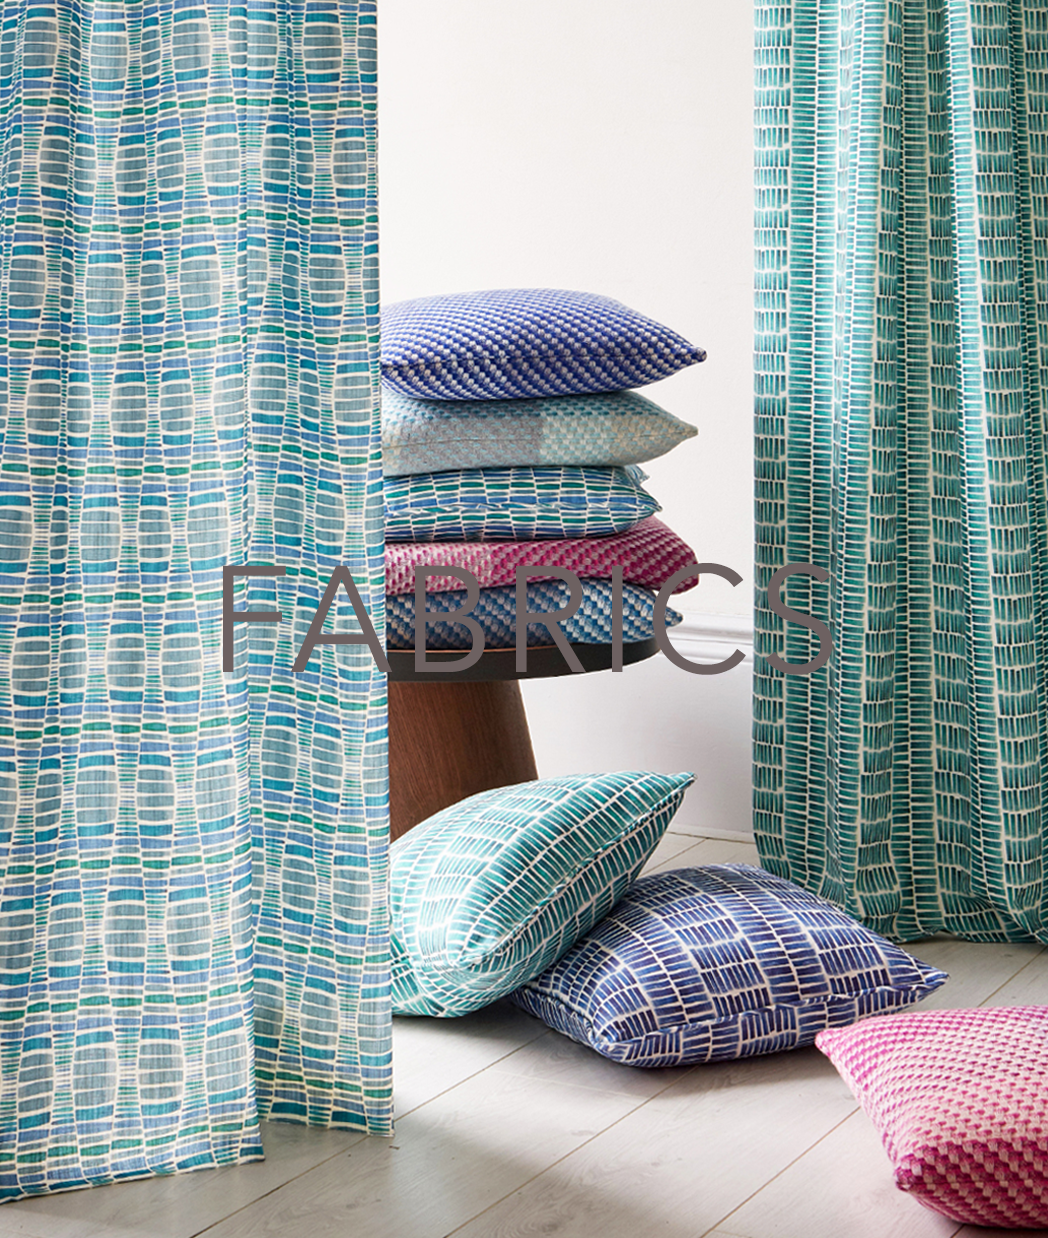 CLAIRE GAUDION interiors fabrics | contemporary textiles for interiors